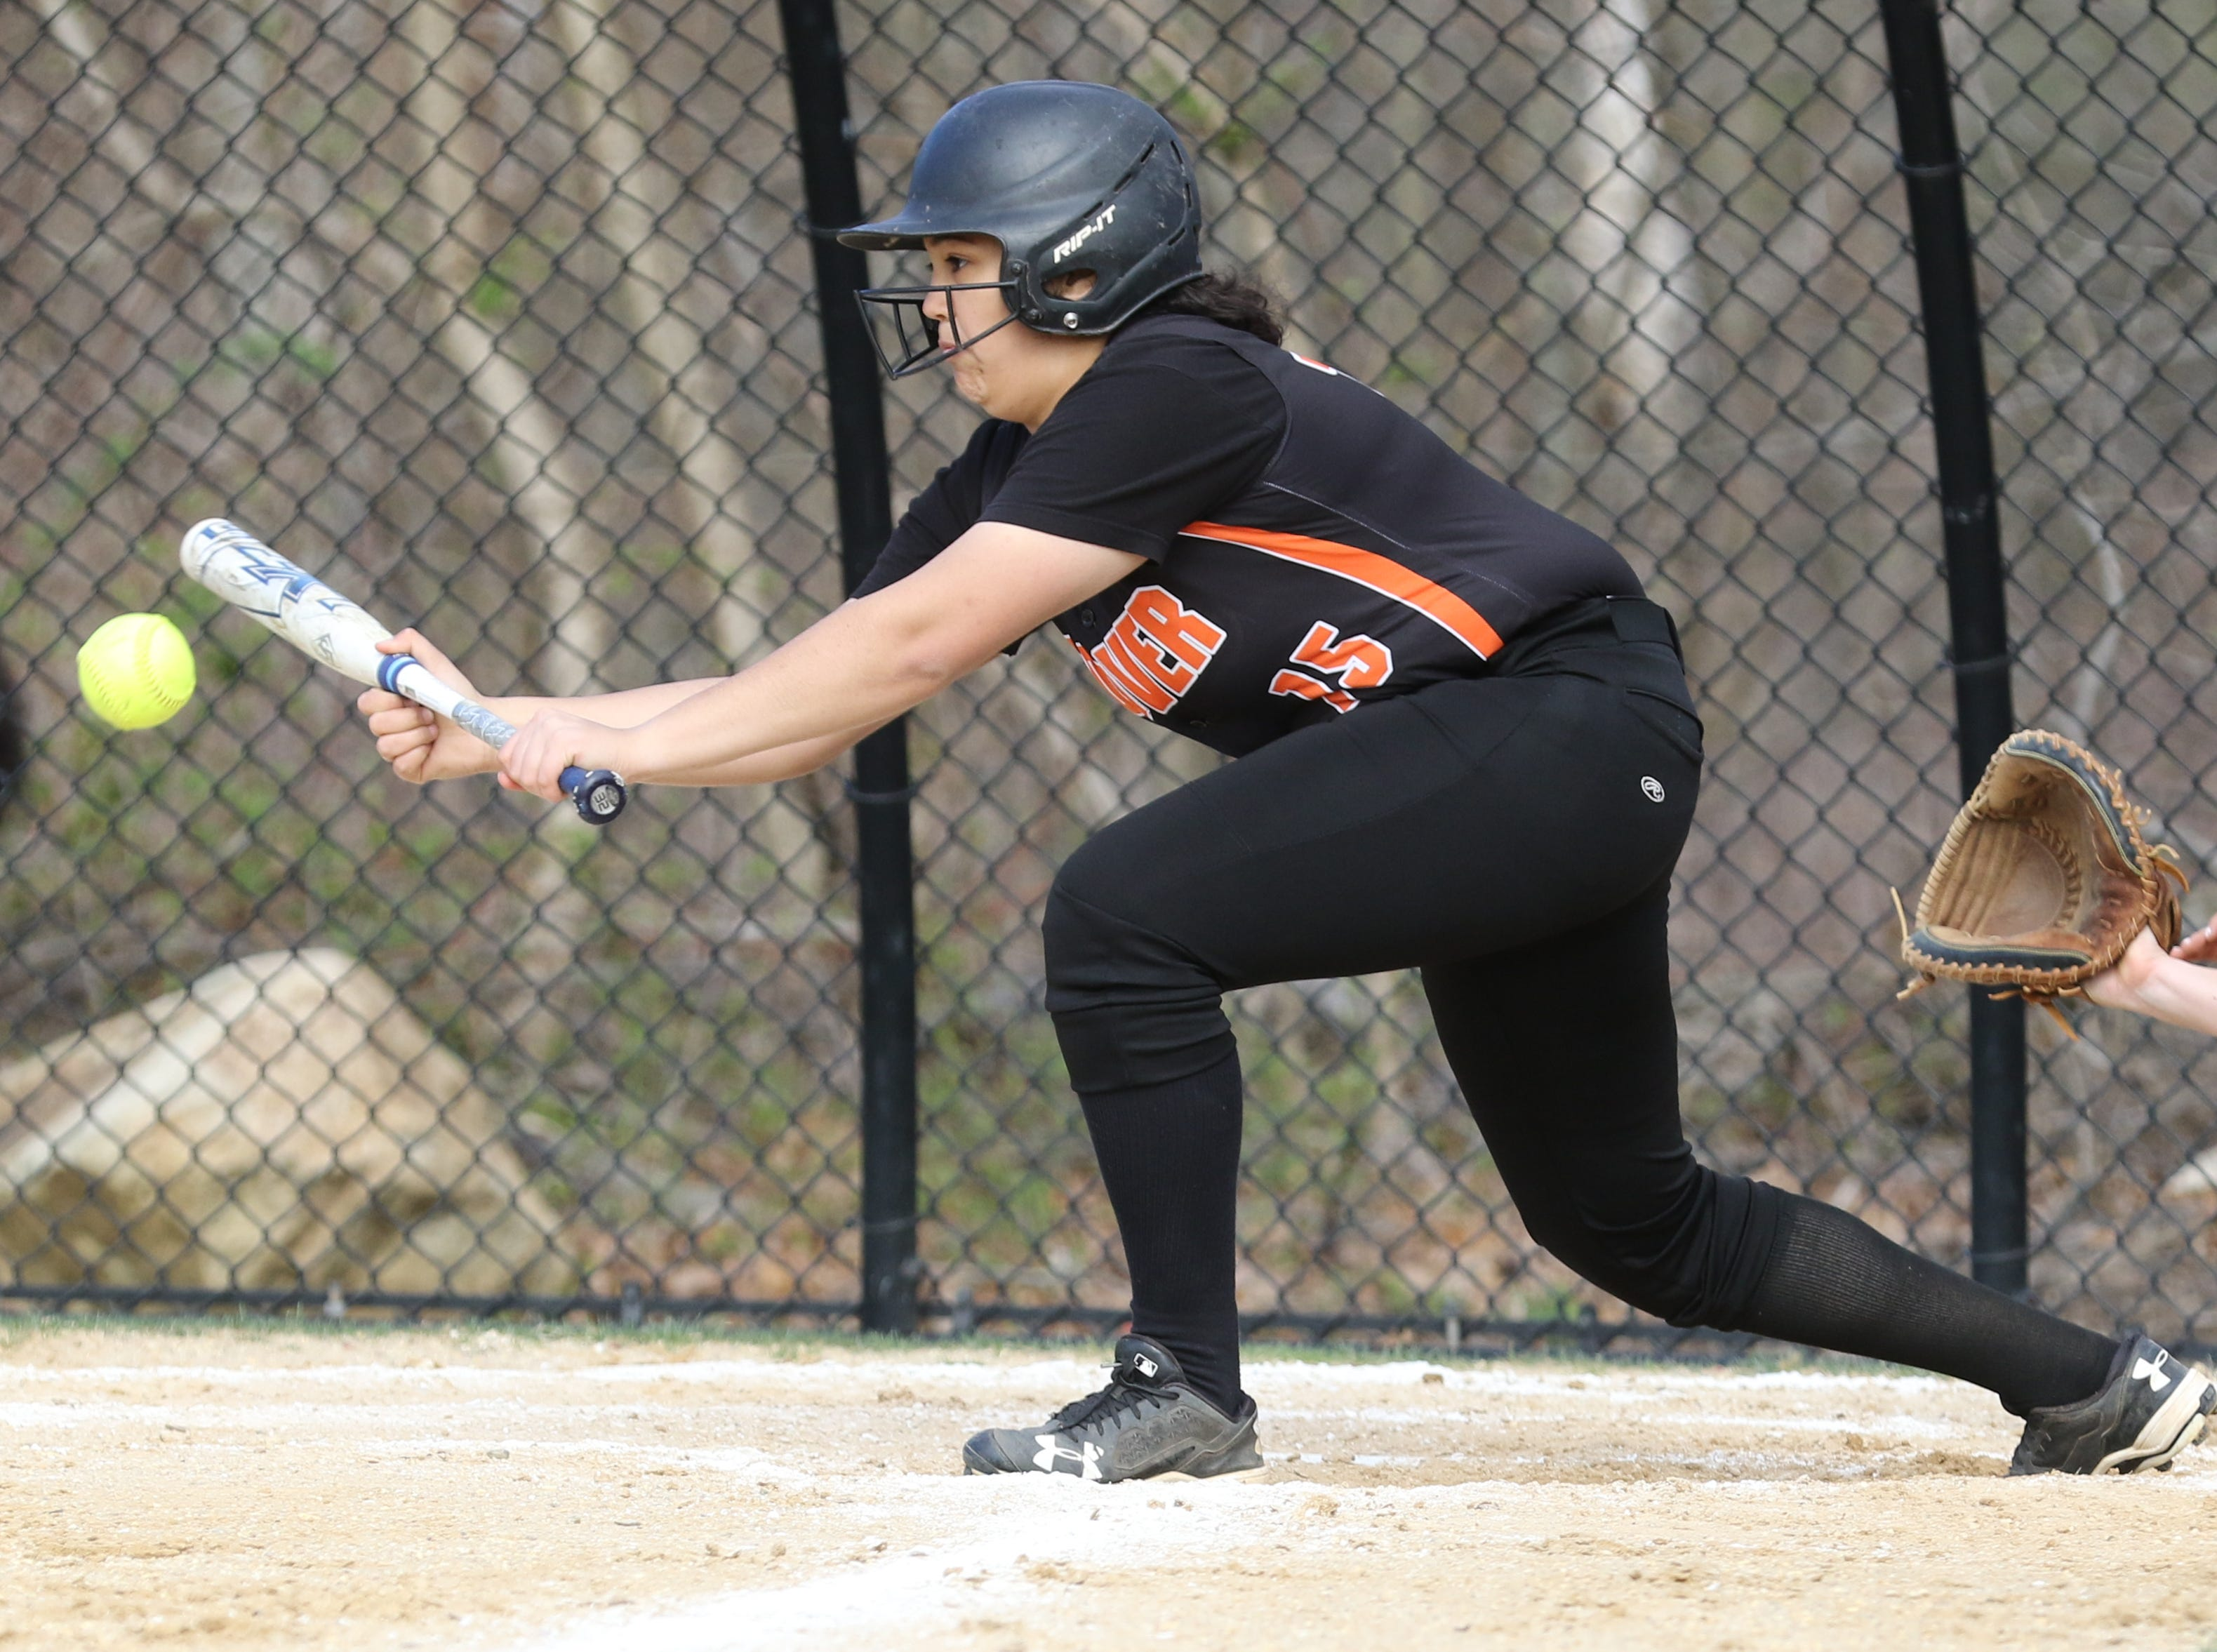 Nour El-Sayyid of Dover bunts the ball in the second inning.